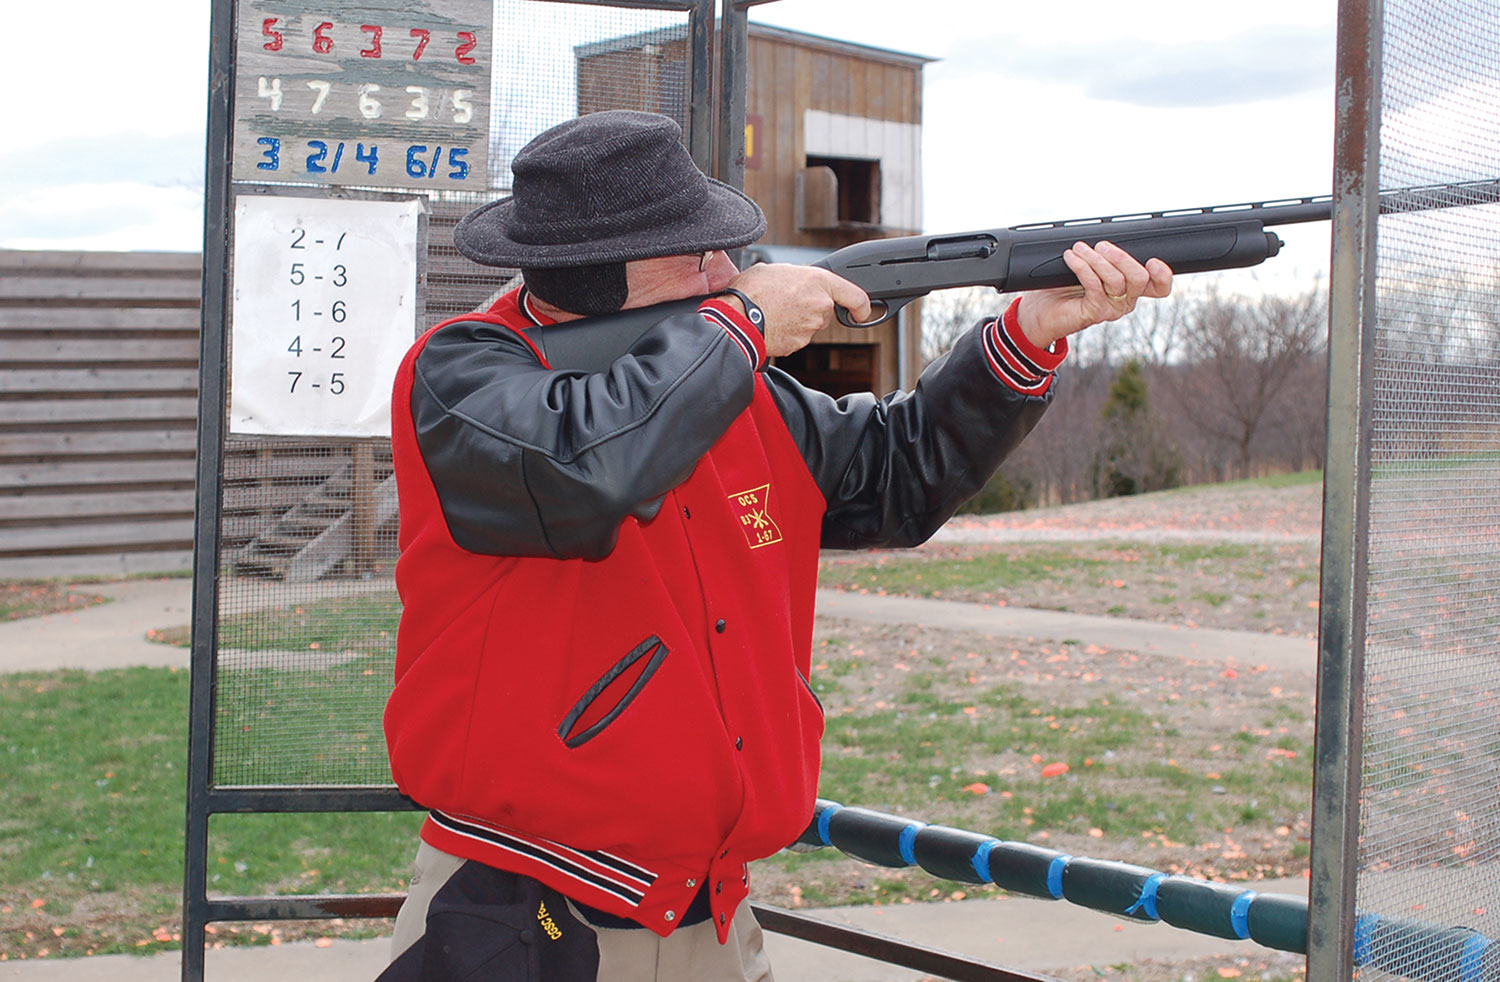 """Hyrum Smith participates in a """"fun shoot"""" at the Fort Leavenworth range hosted by the Foundation leadership prior to a board meeting on March 23, 2011. (photo by Mark H. Wiggins)"""